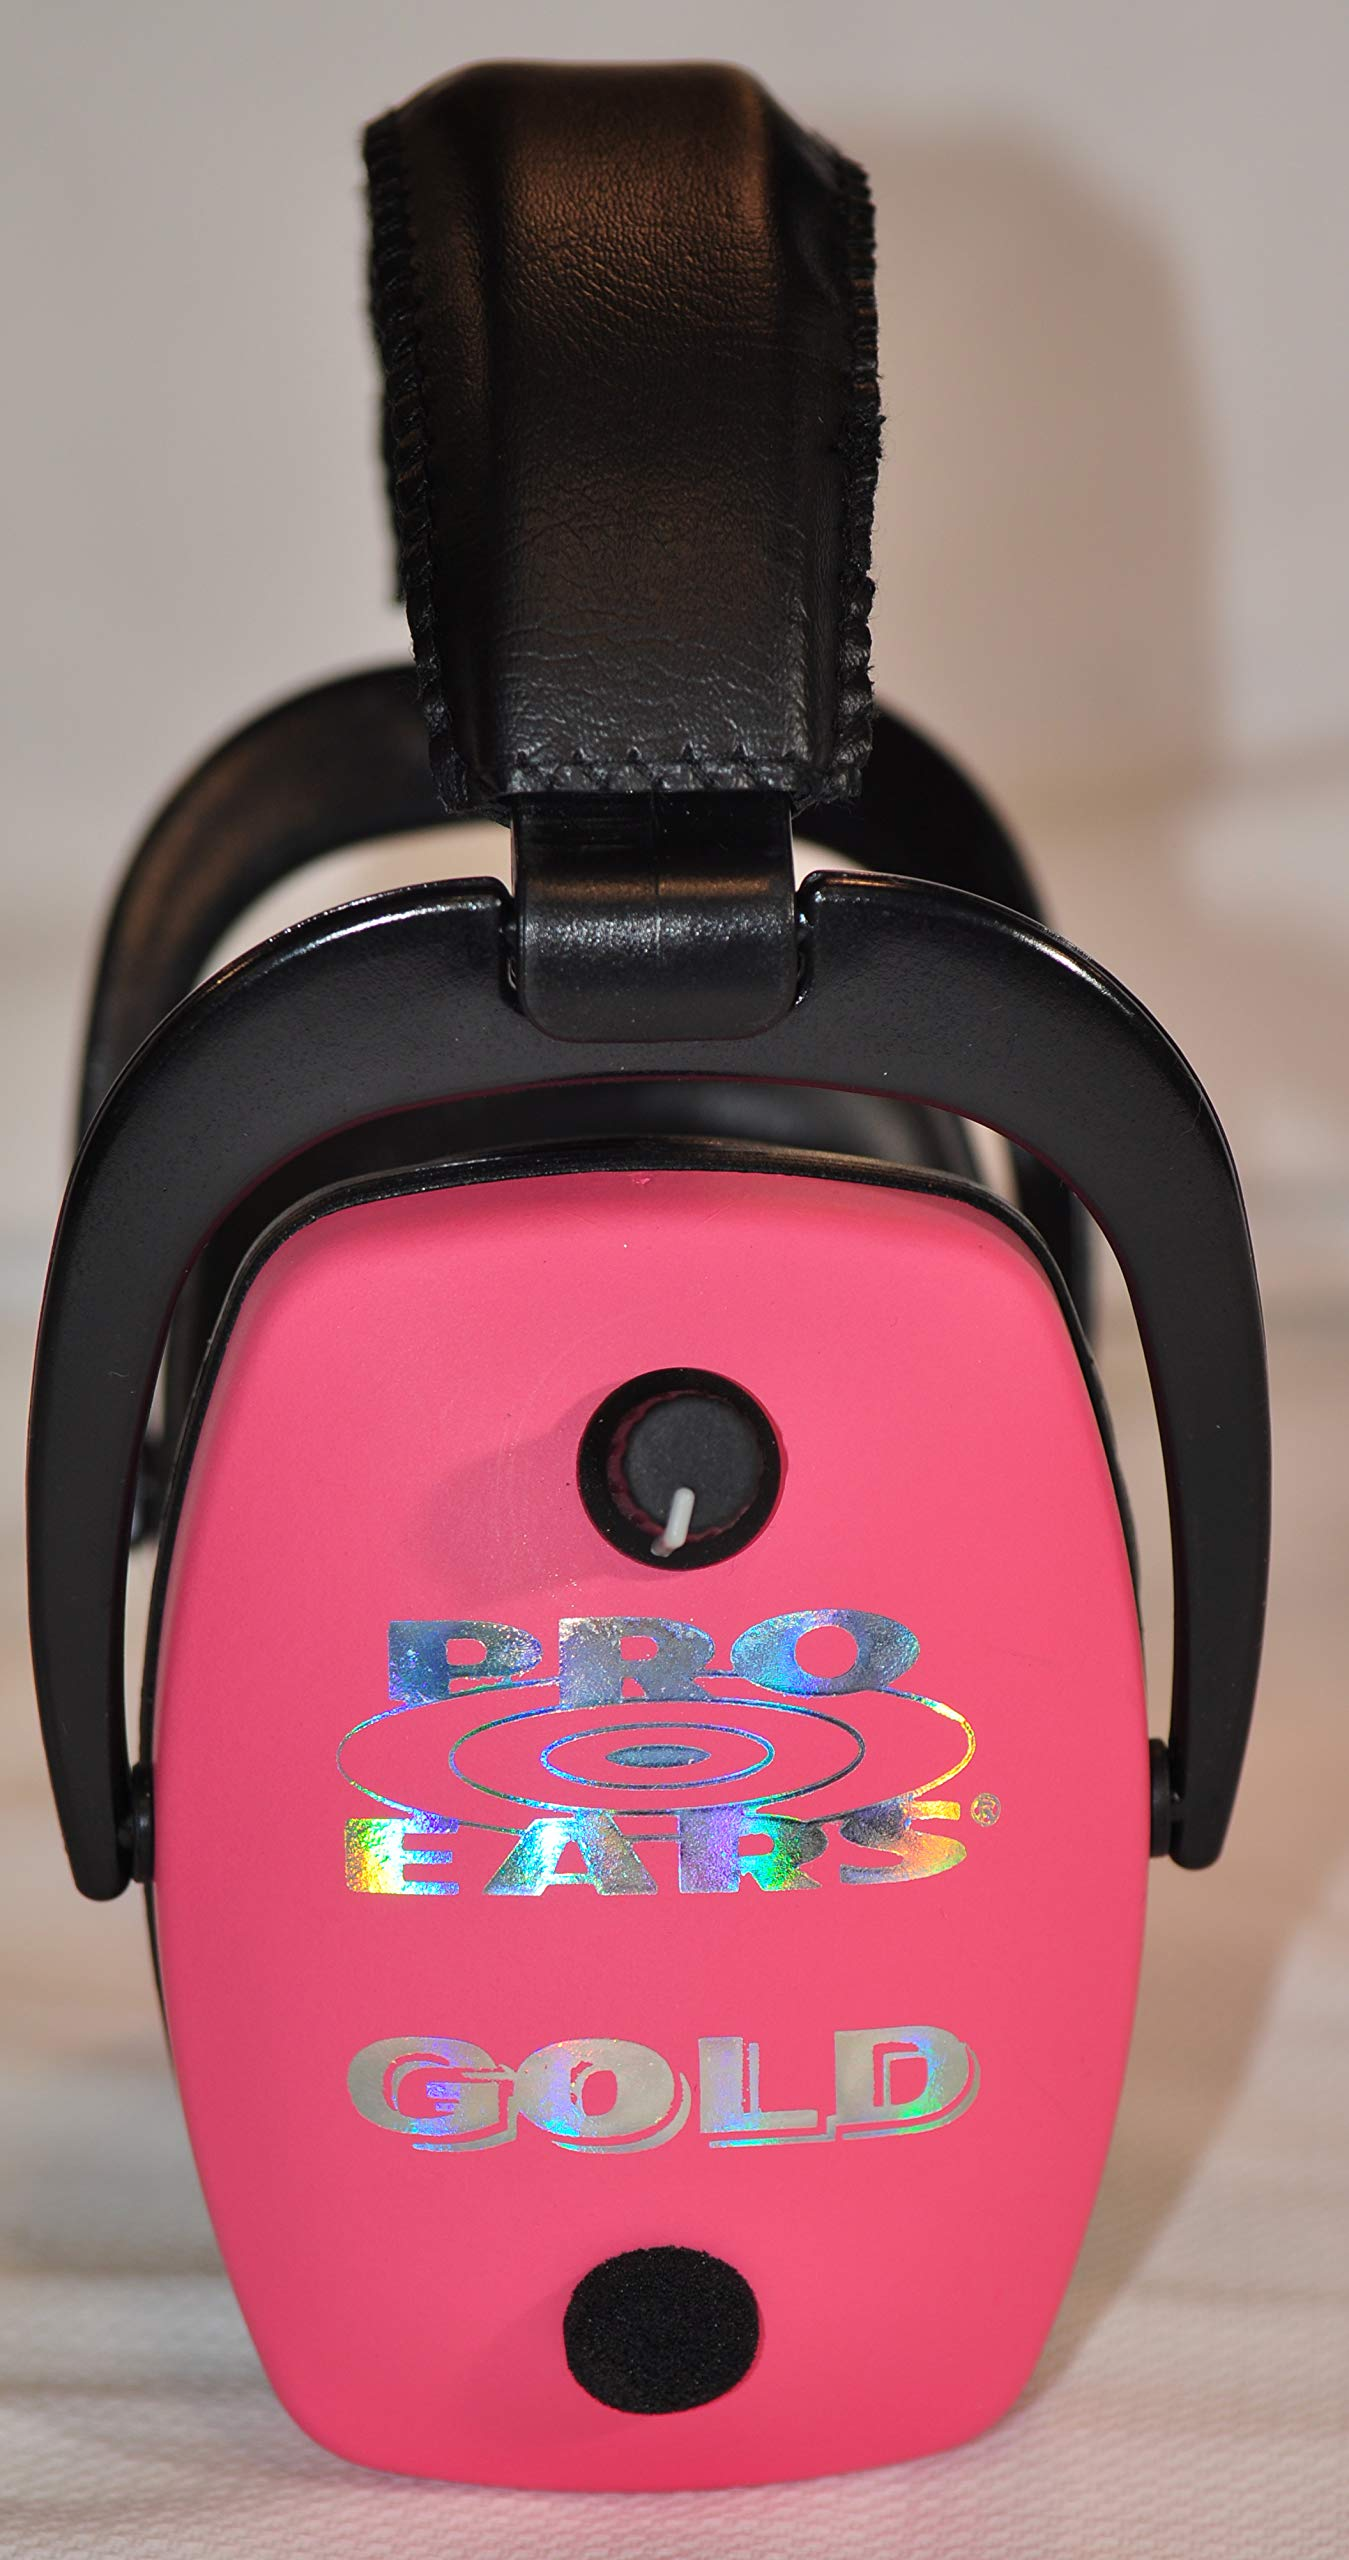 Pro Ears Pro Mag Gold Hearing Protection and Amplification Ear Muffs, Pink